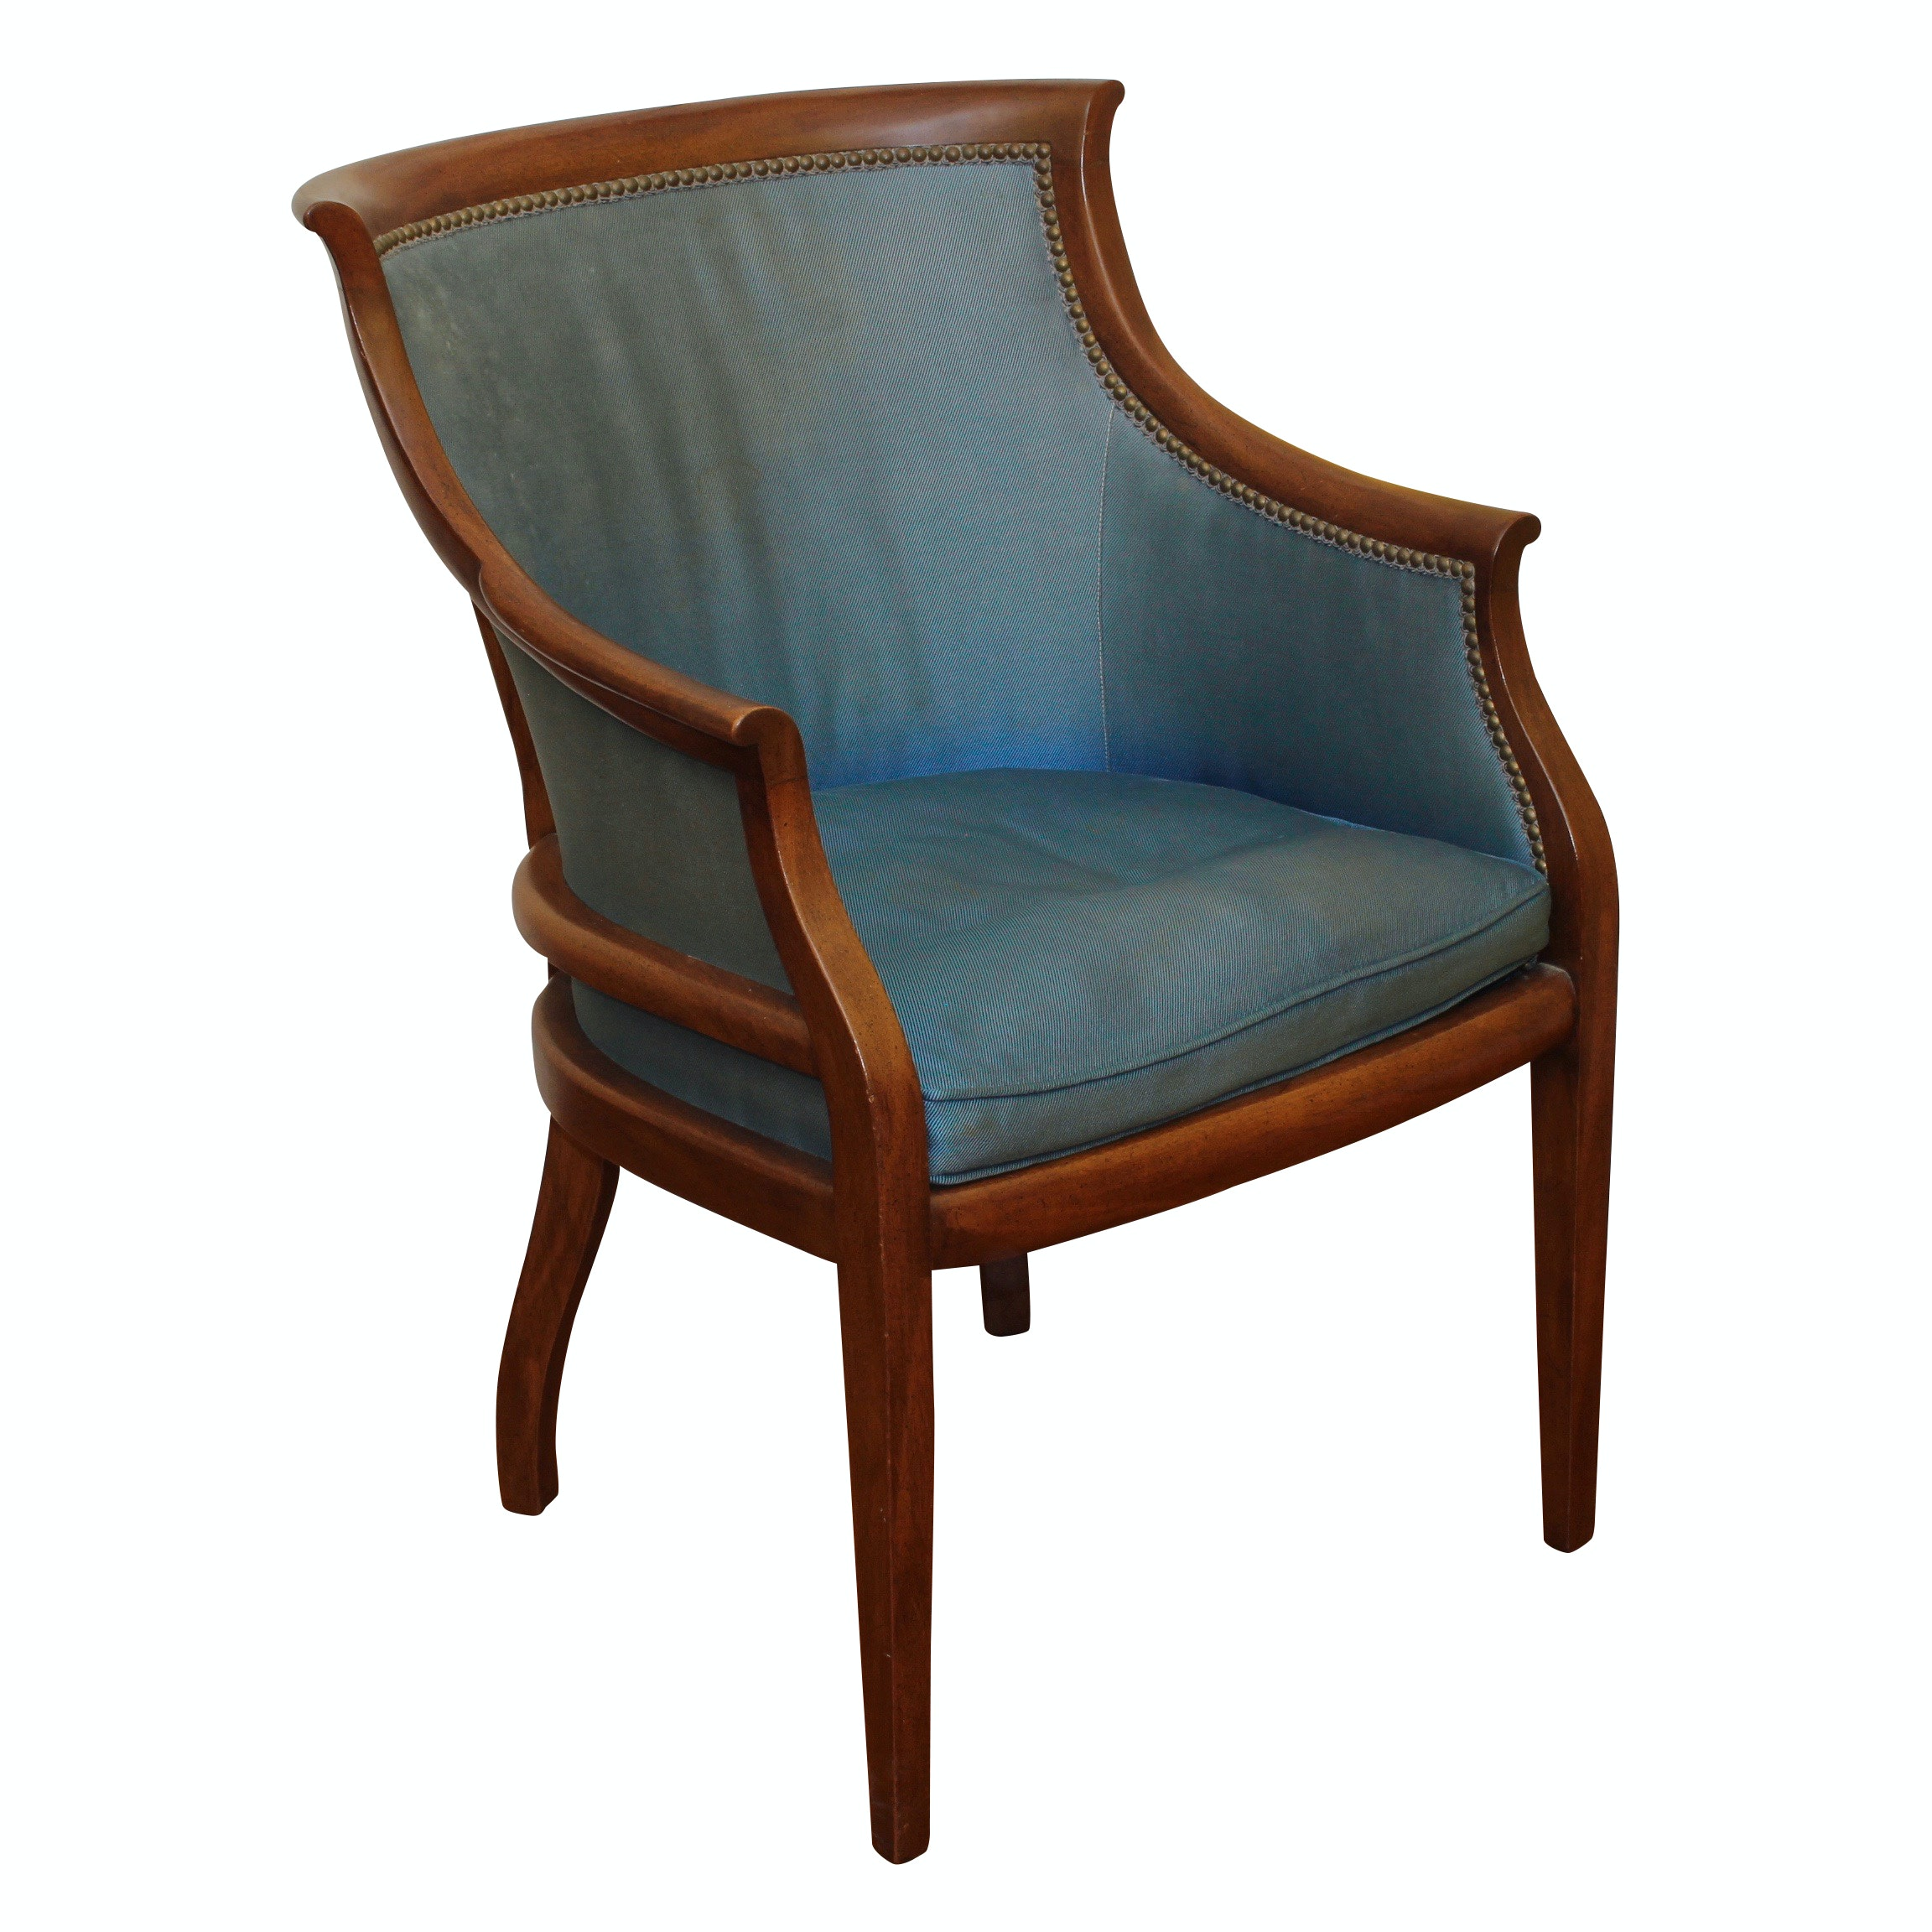 Duralee Directoire Style Blue Arm Chair, Vintage